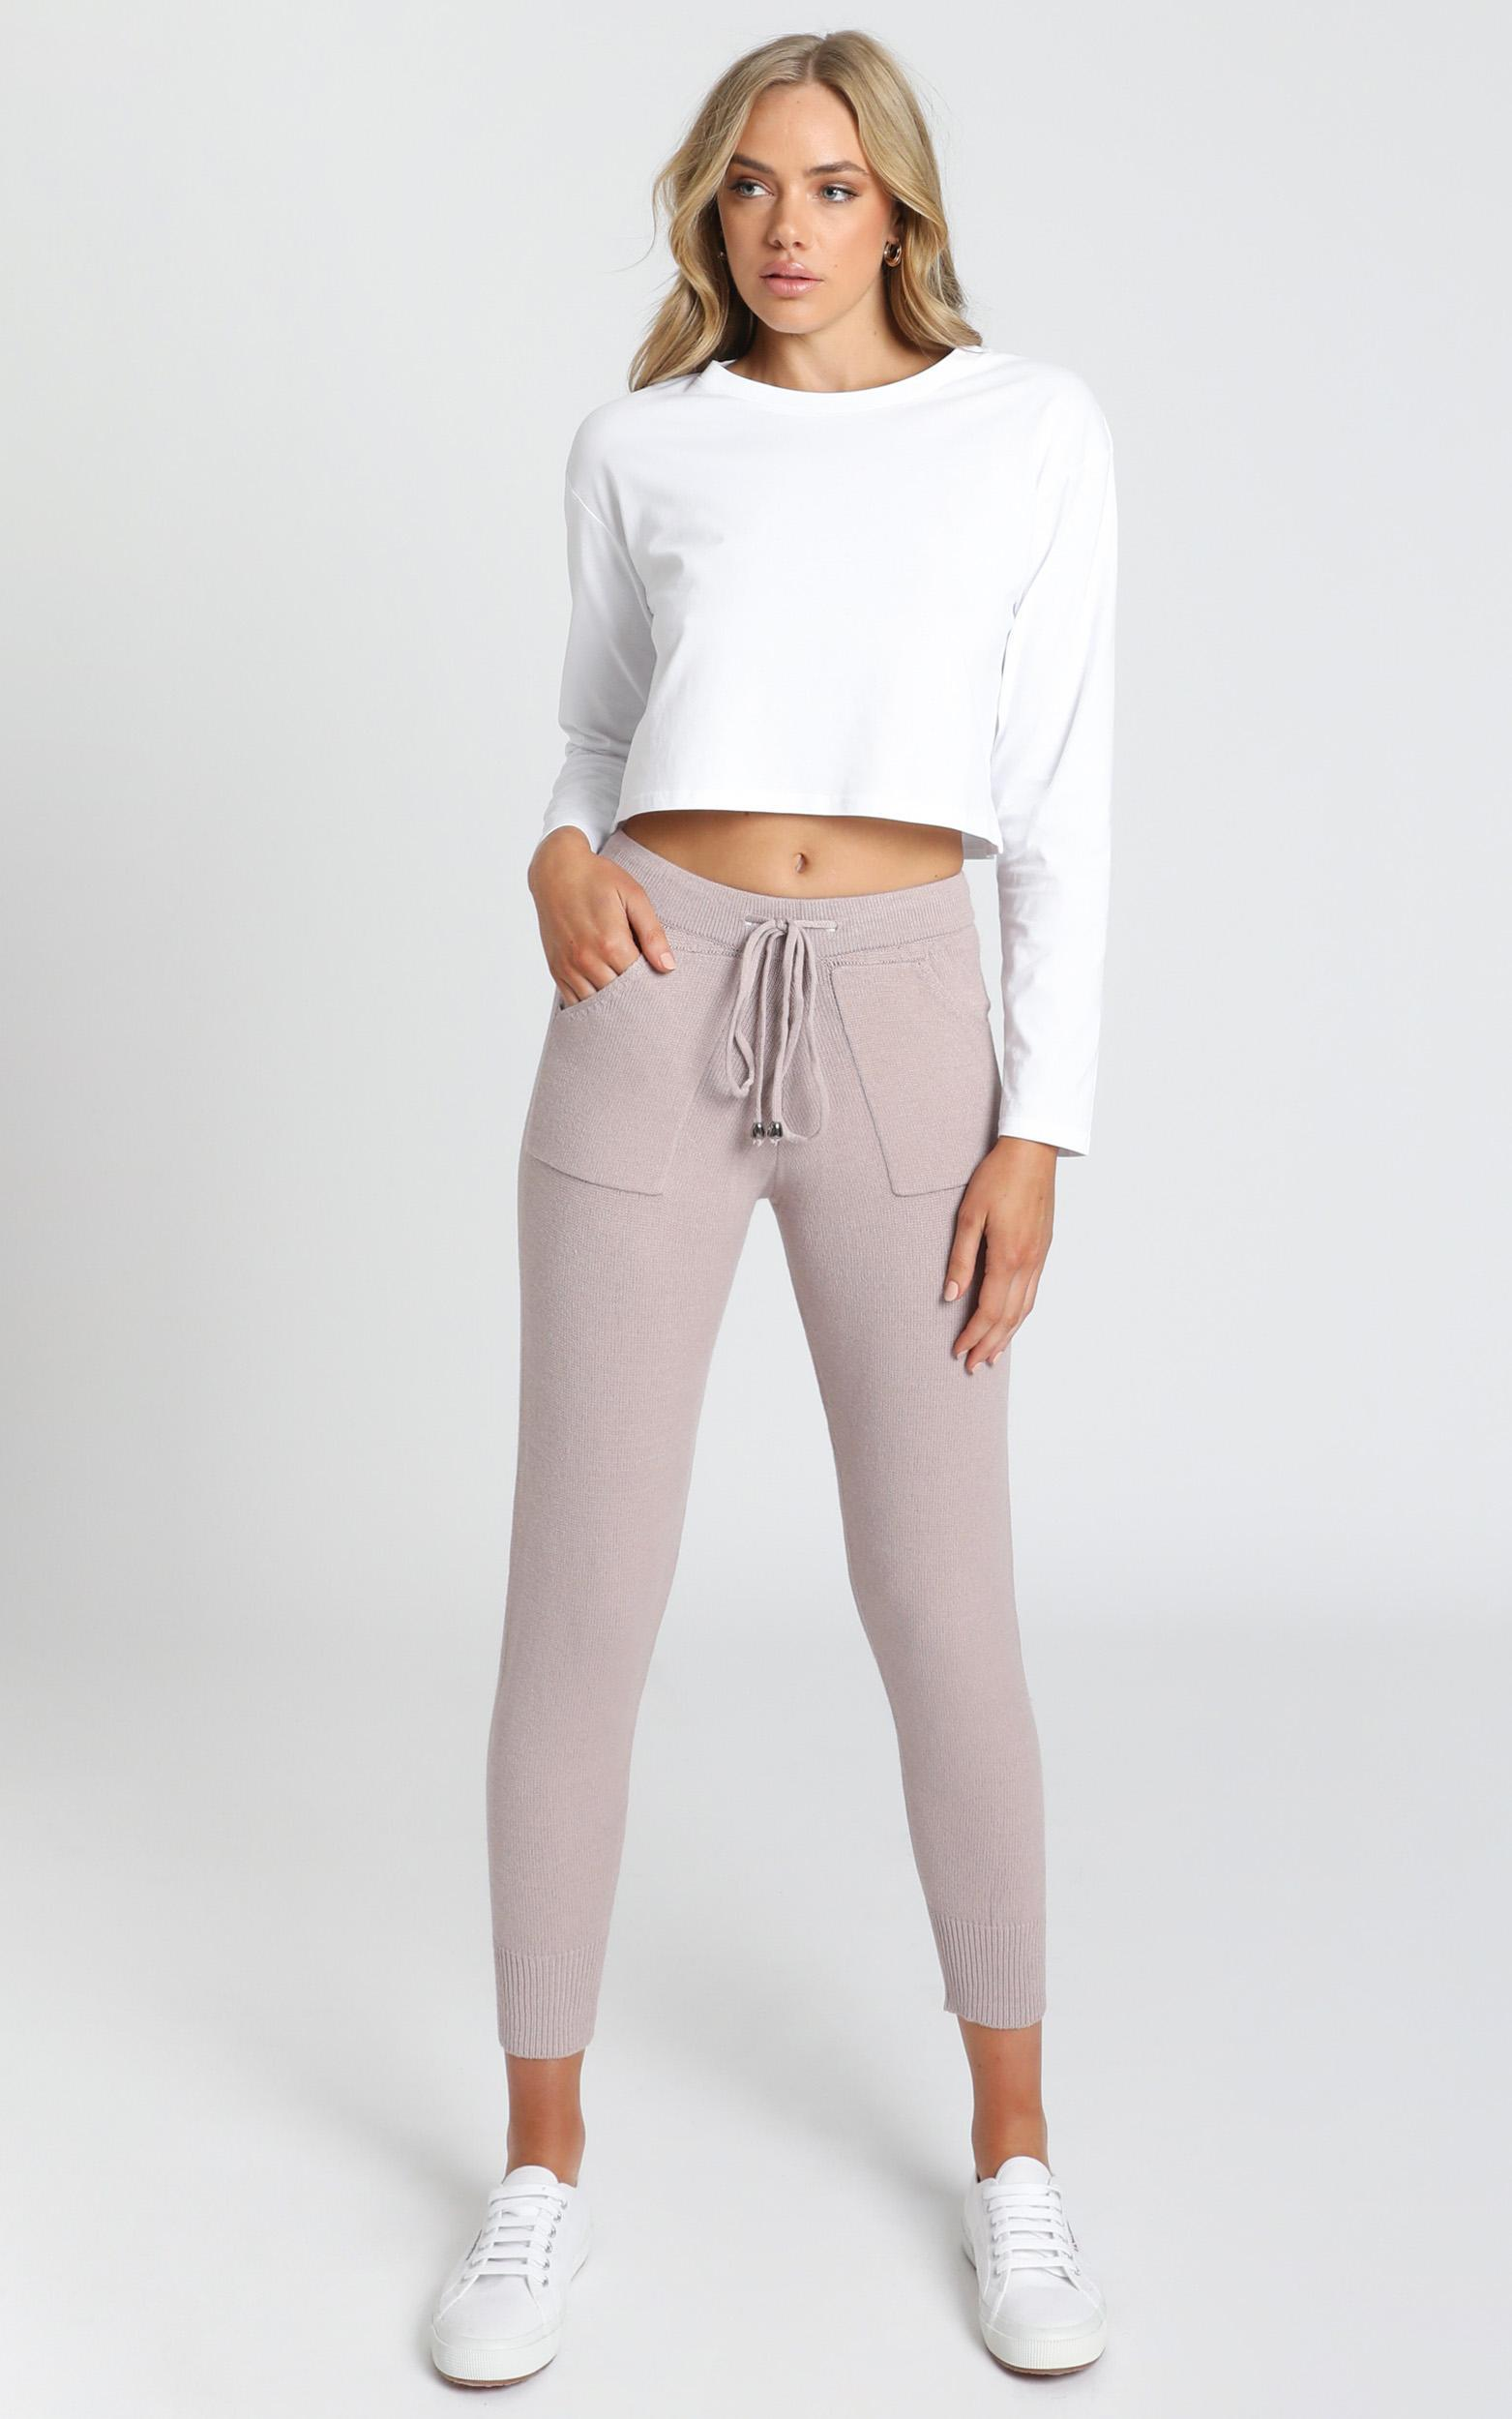 Lounge in Style Knit Pant in Mocha Marle - 8 (S), Mocha, hi-res image number null